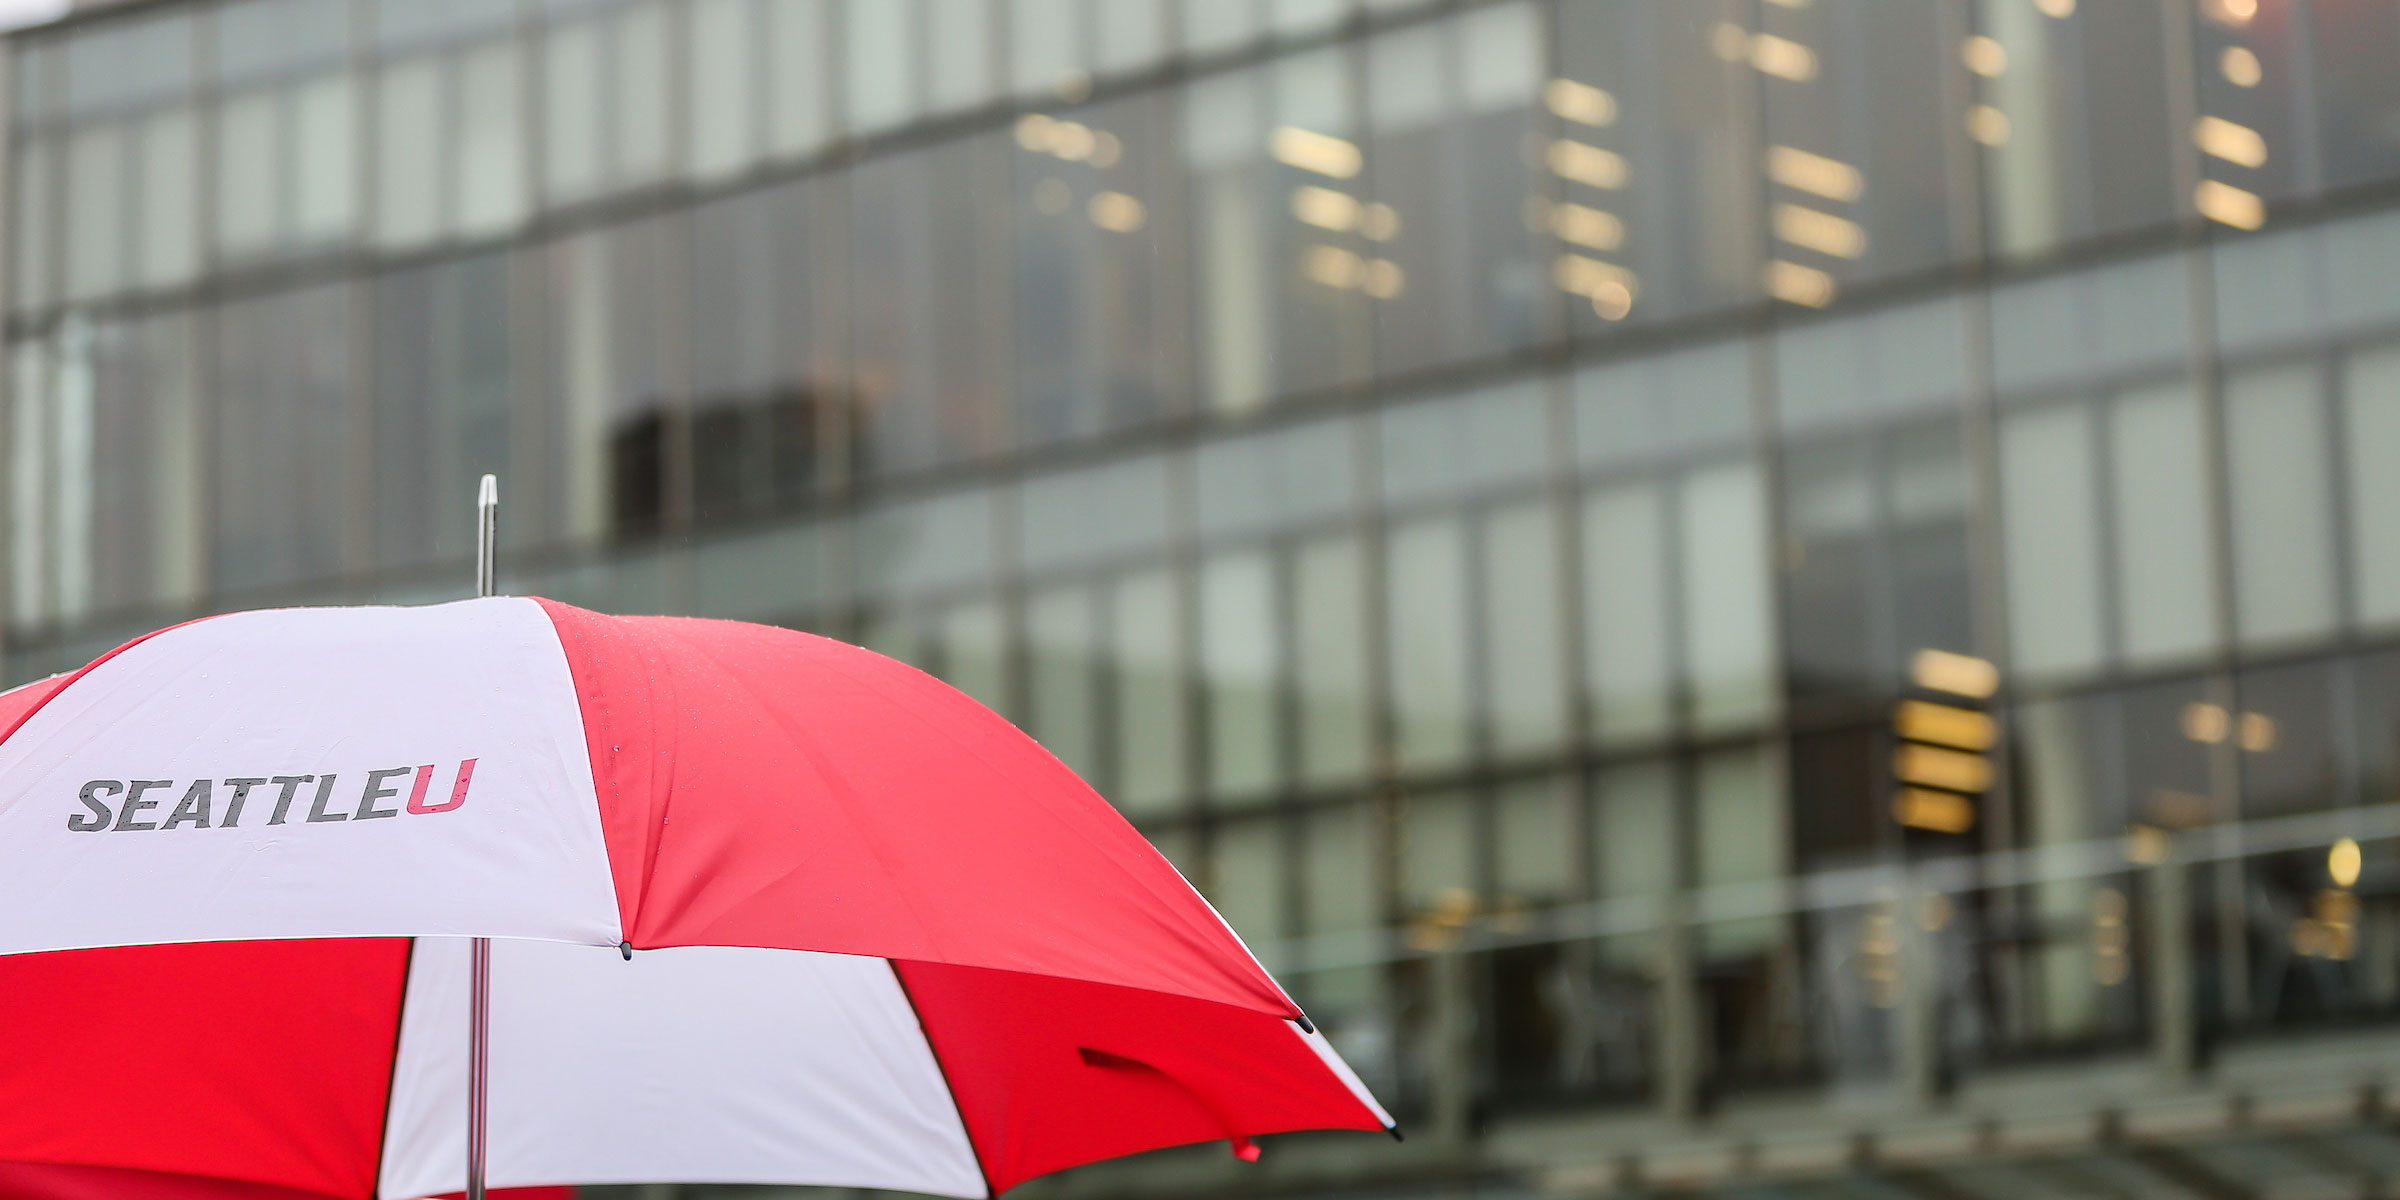 bright red and white SU umbrella on a rainy day